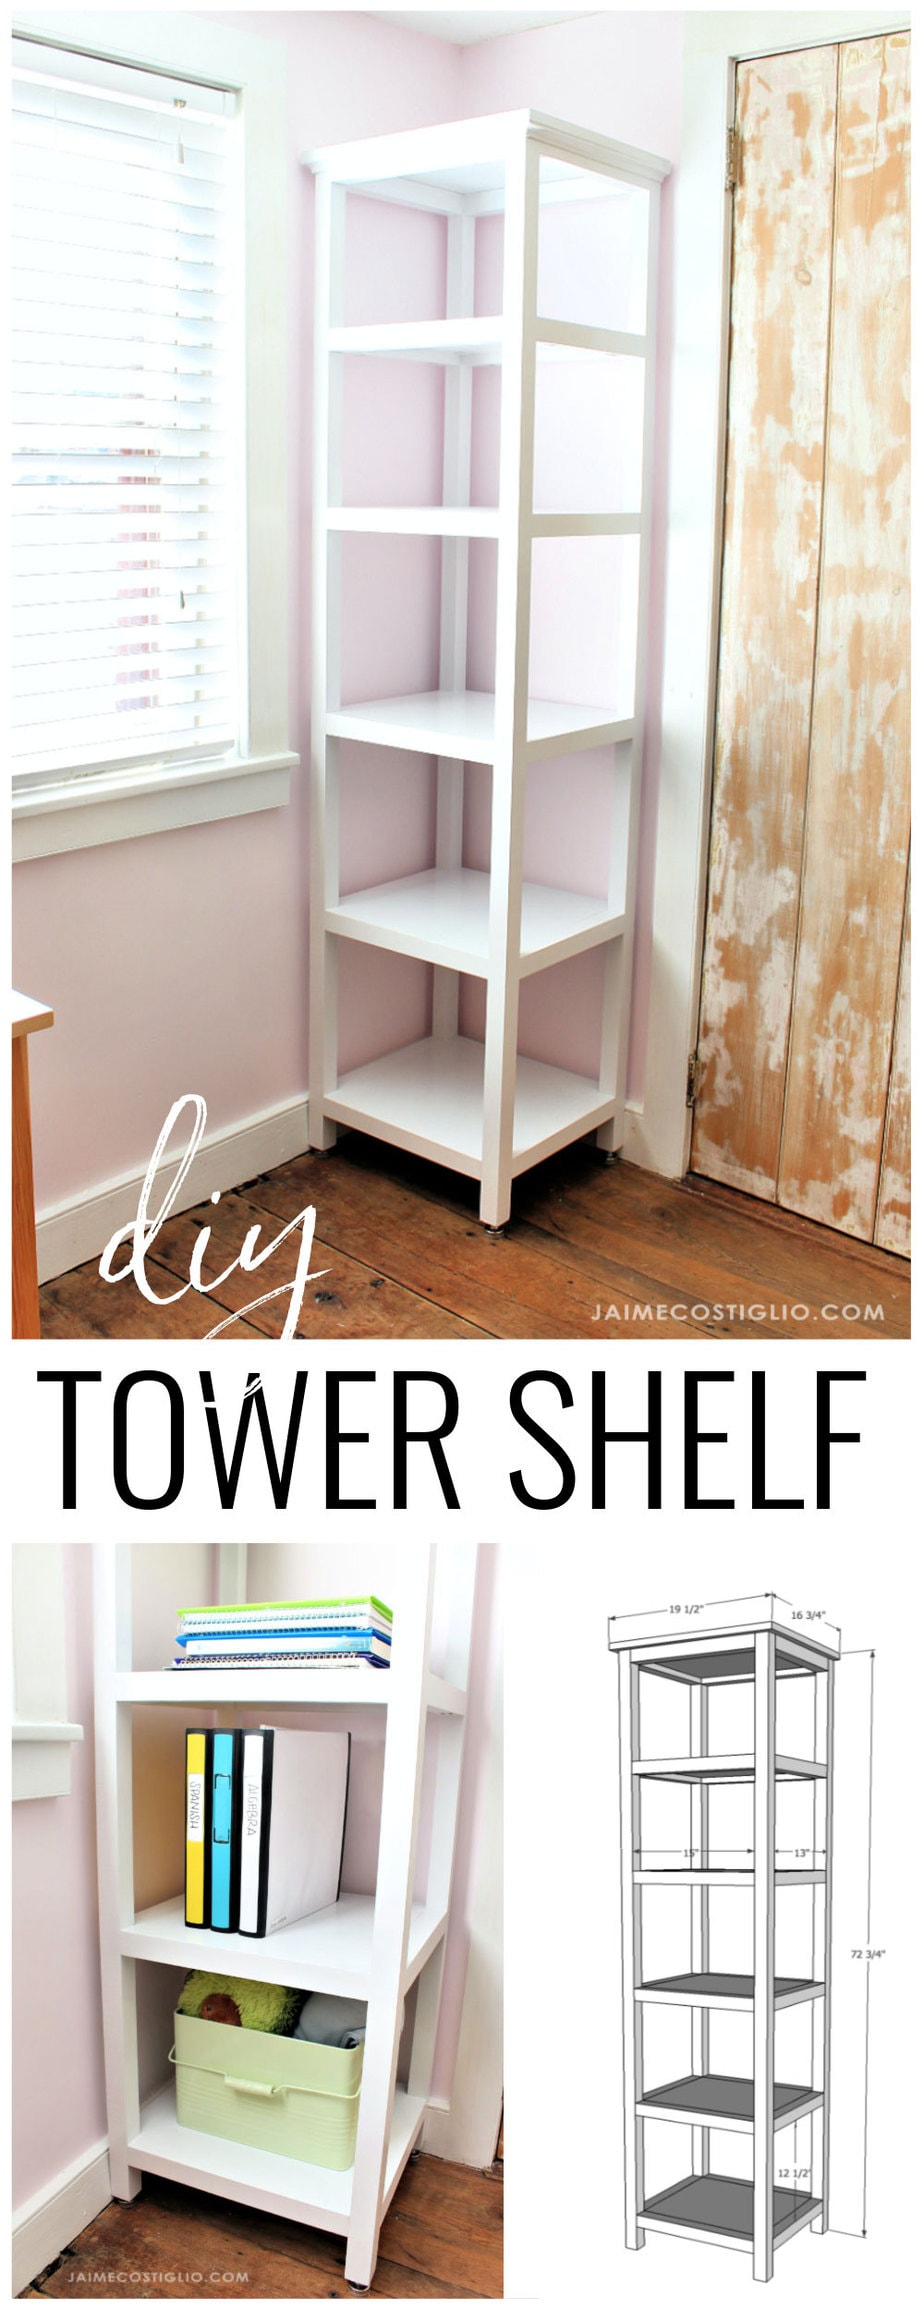 tower shelf free plans